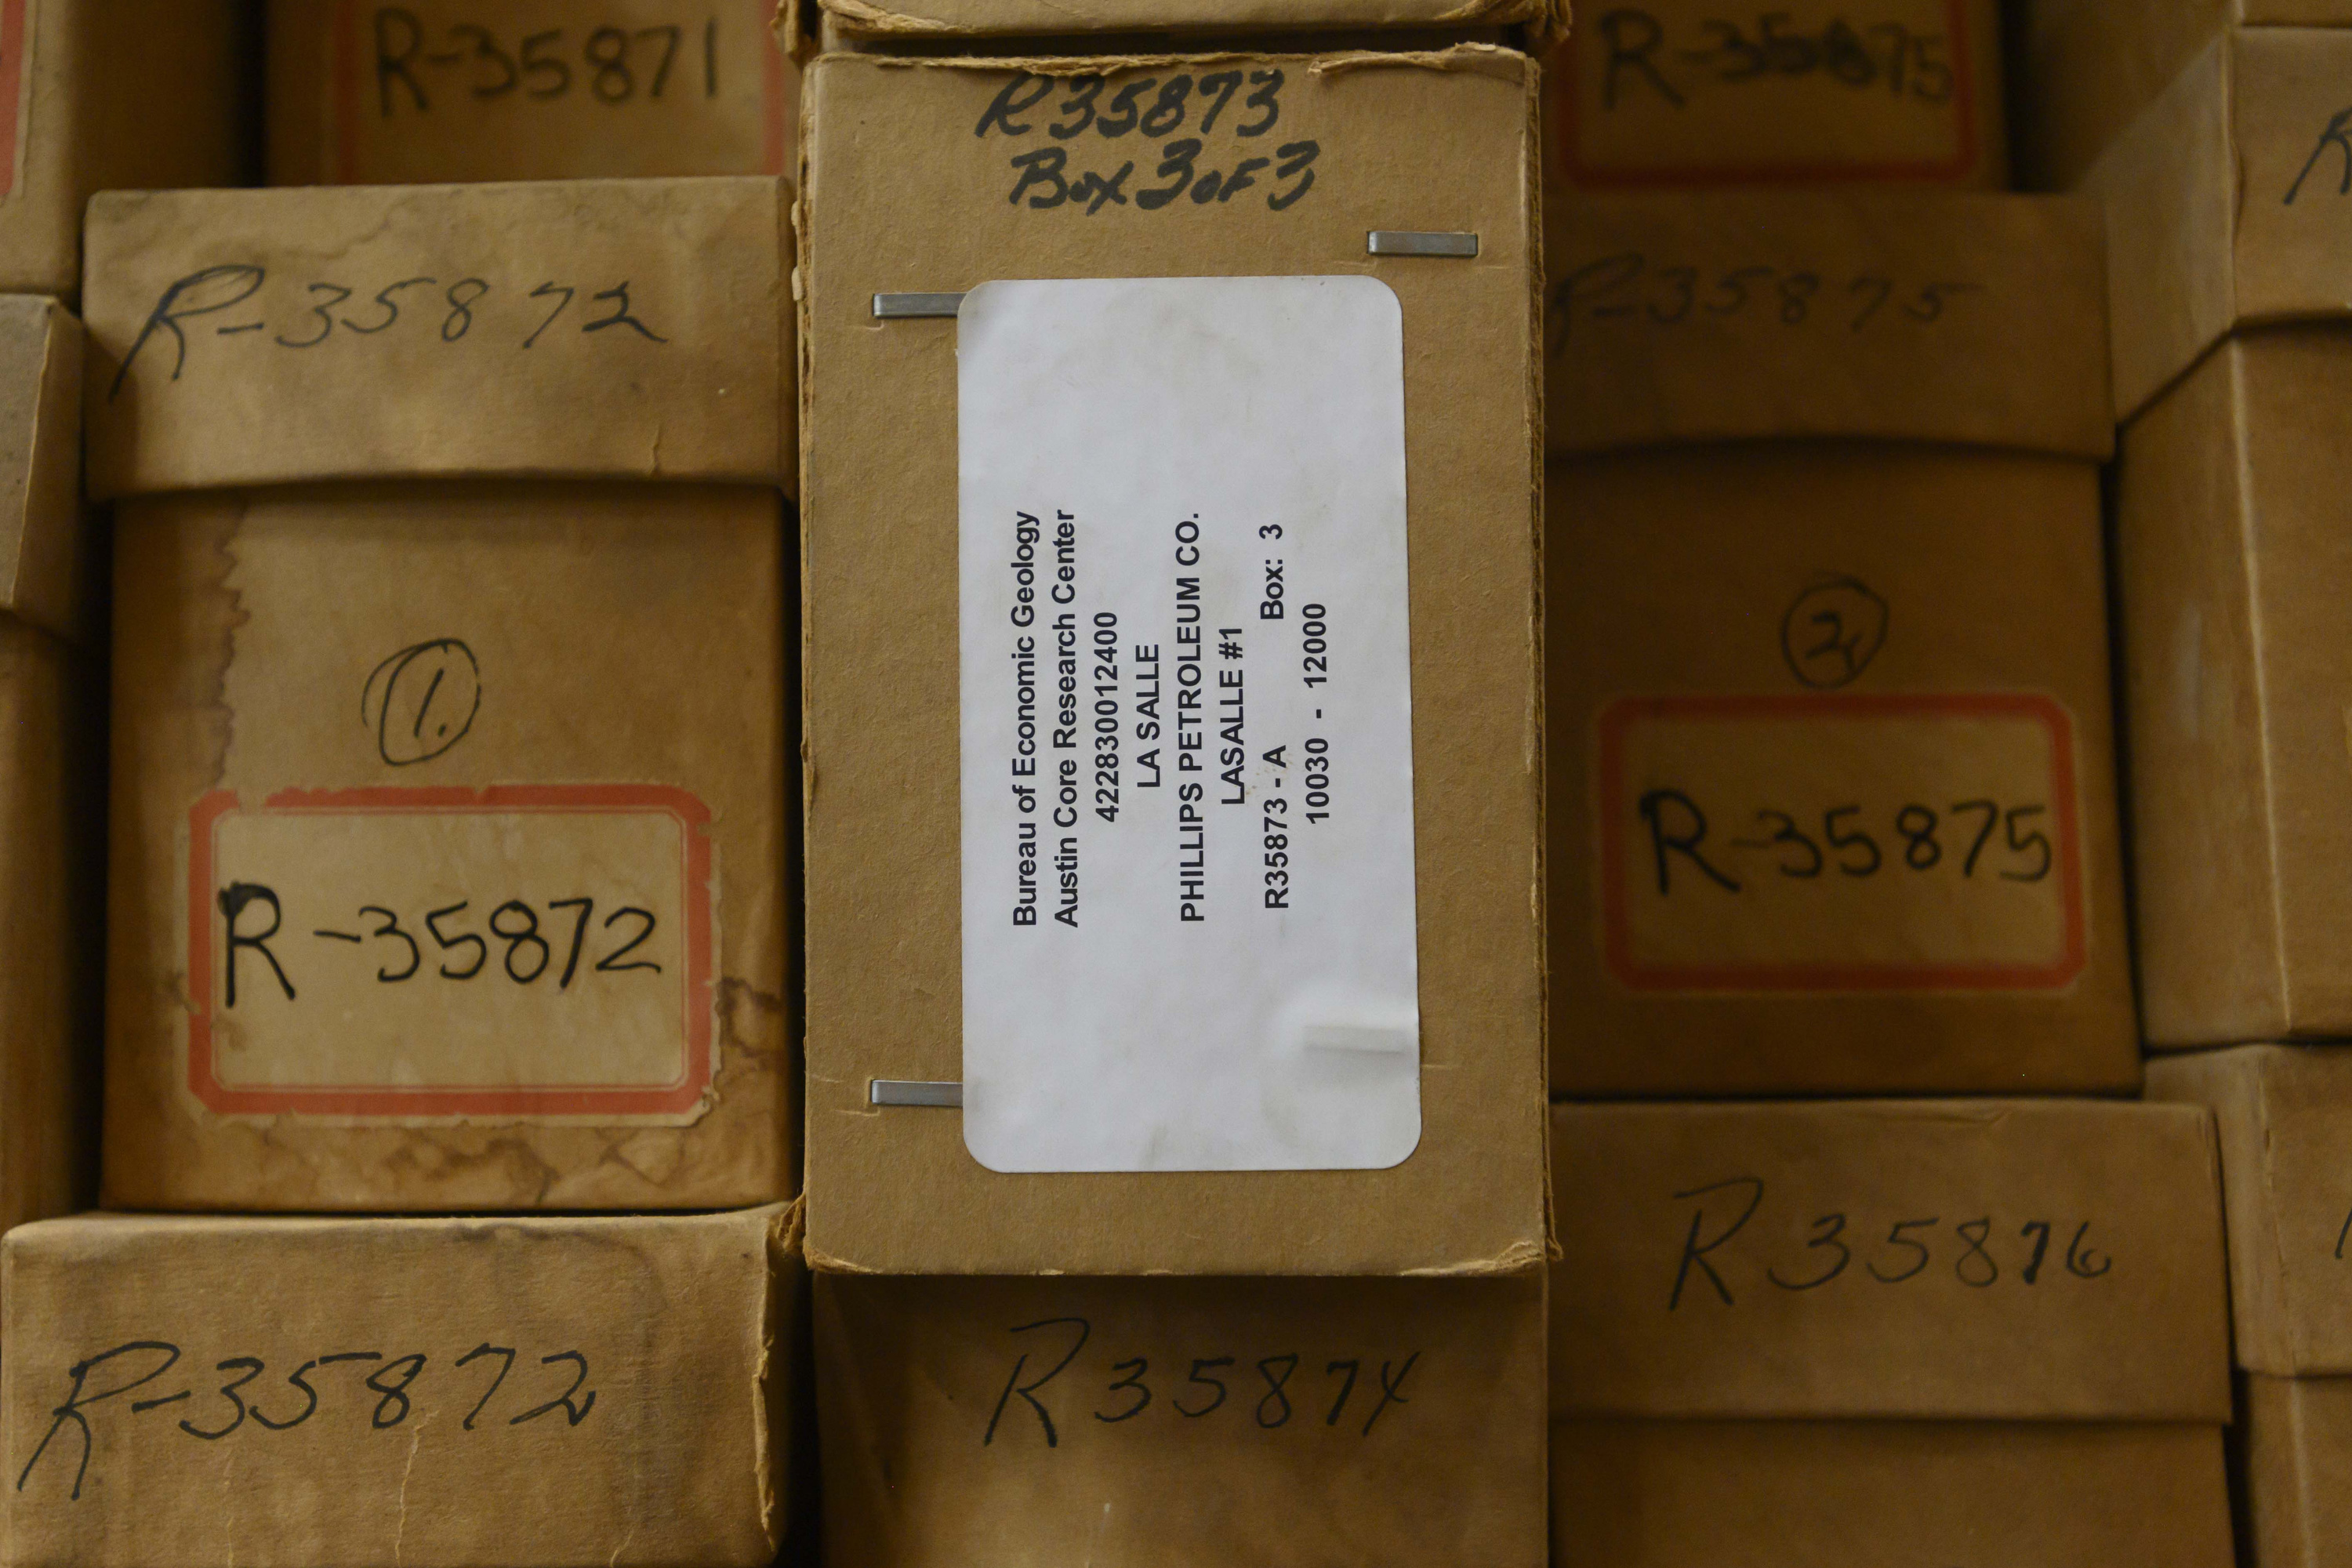 Small brown box that contains the cuttings that were analyzed for the Eagle Ford exploration.